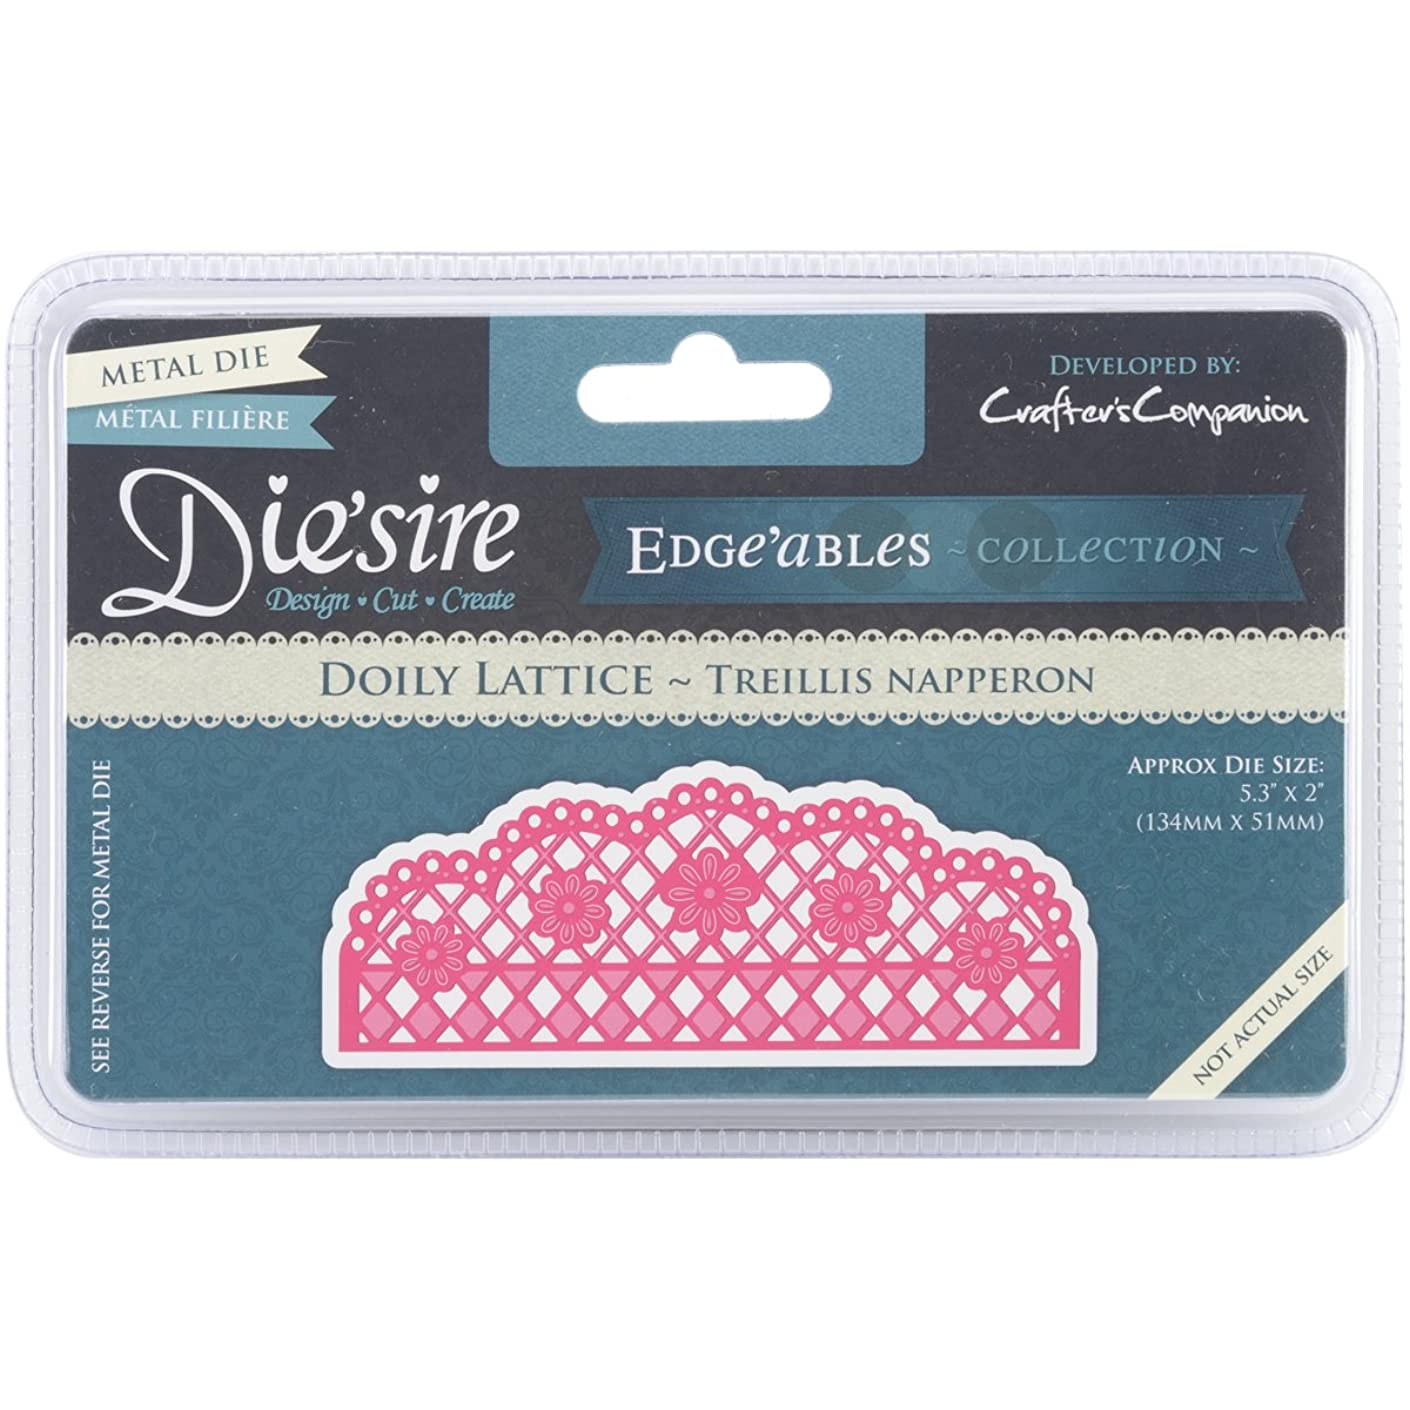 Crafter's Companion Doily Lattice Die'sire Edge'ables Cutting & Embossing Die